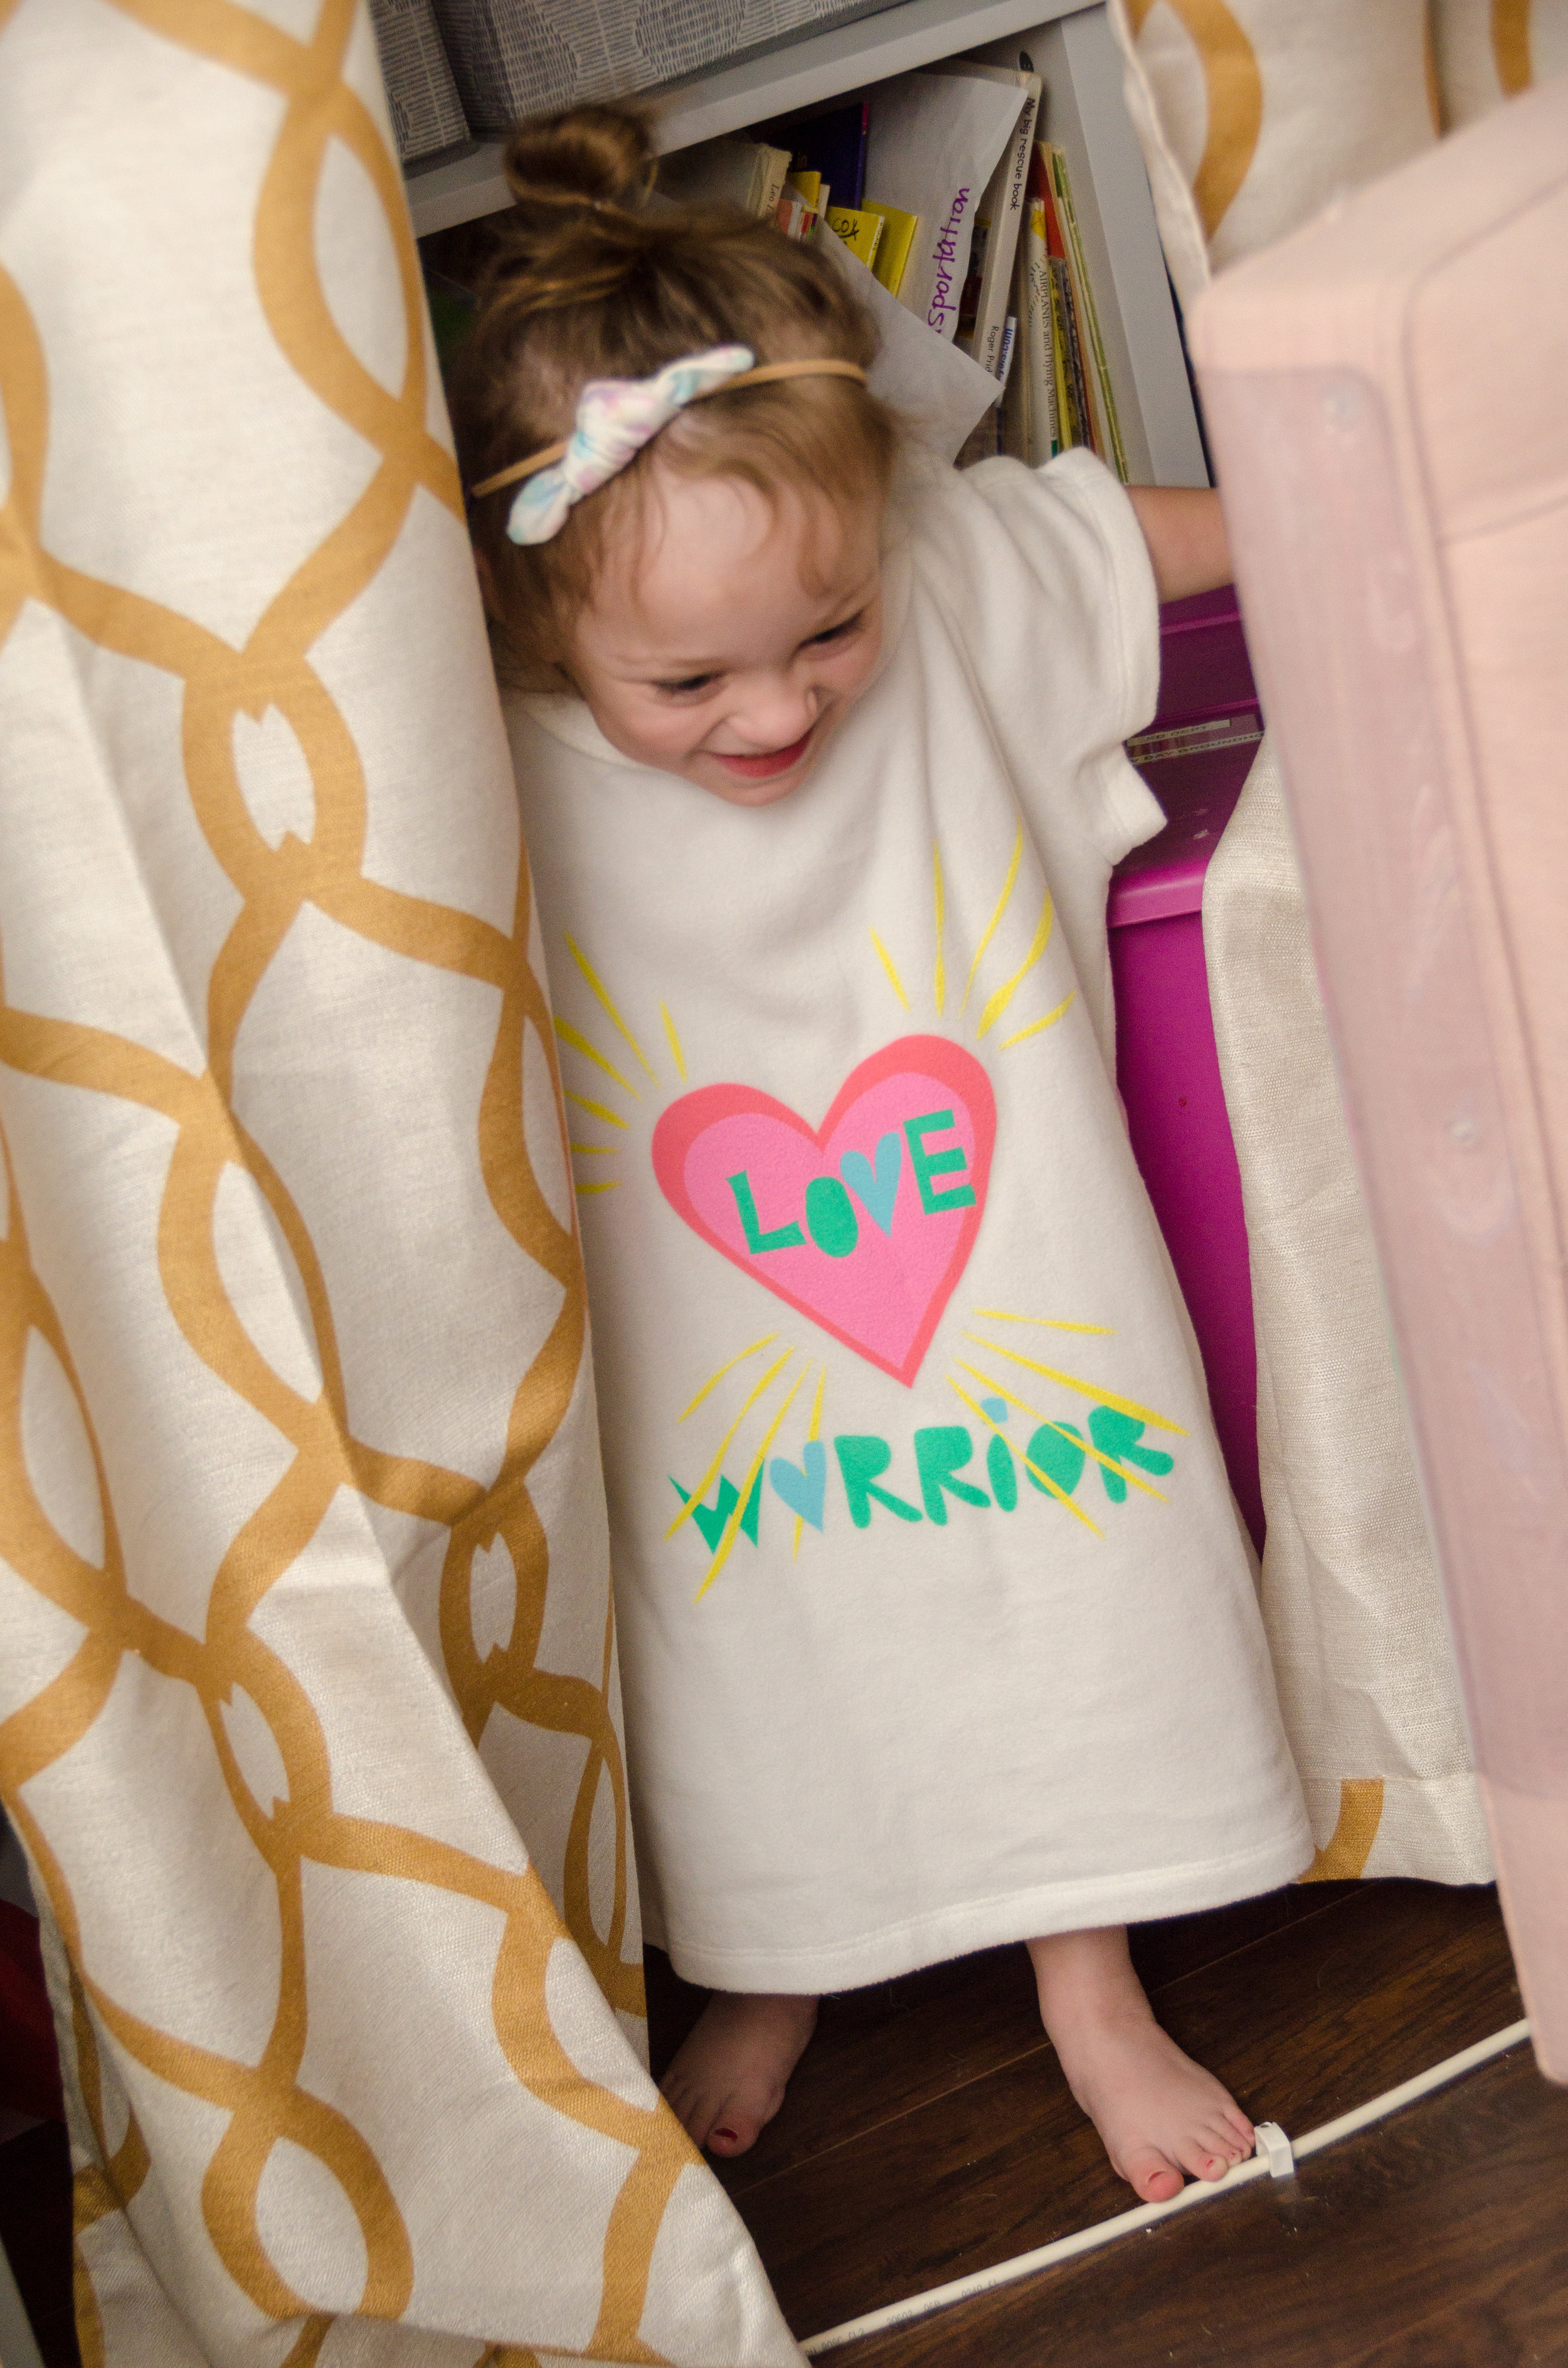 about - Giftgowns makes alternative hospital gowns that are designed to lift the spirits of patients. Our hospital gowns have the functionality of a typical hospital gown, but are made of soft and cozy fabrics. They also feature snap buttons down the back and shoulders to ensure everything stays covered up! Our hospital gowns are great for surgery, recovery, and maternity. We offer both adult and children hospital gowns in sizes XXS - XXXL